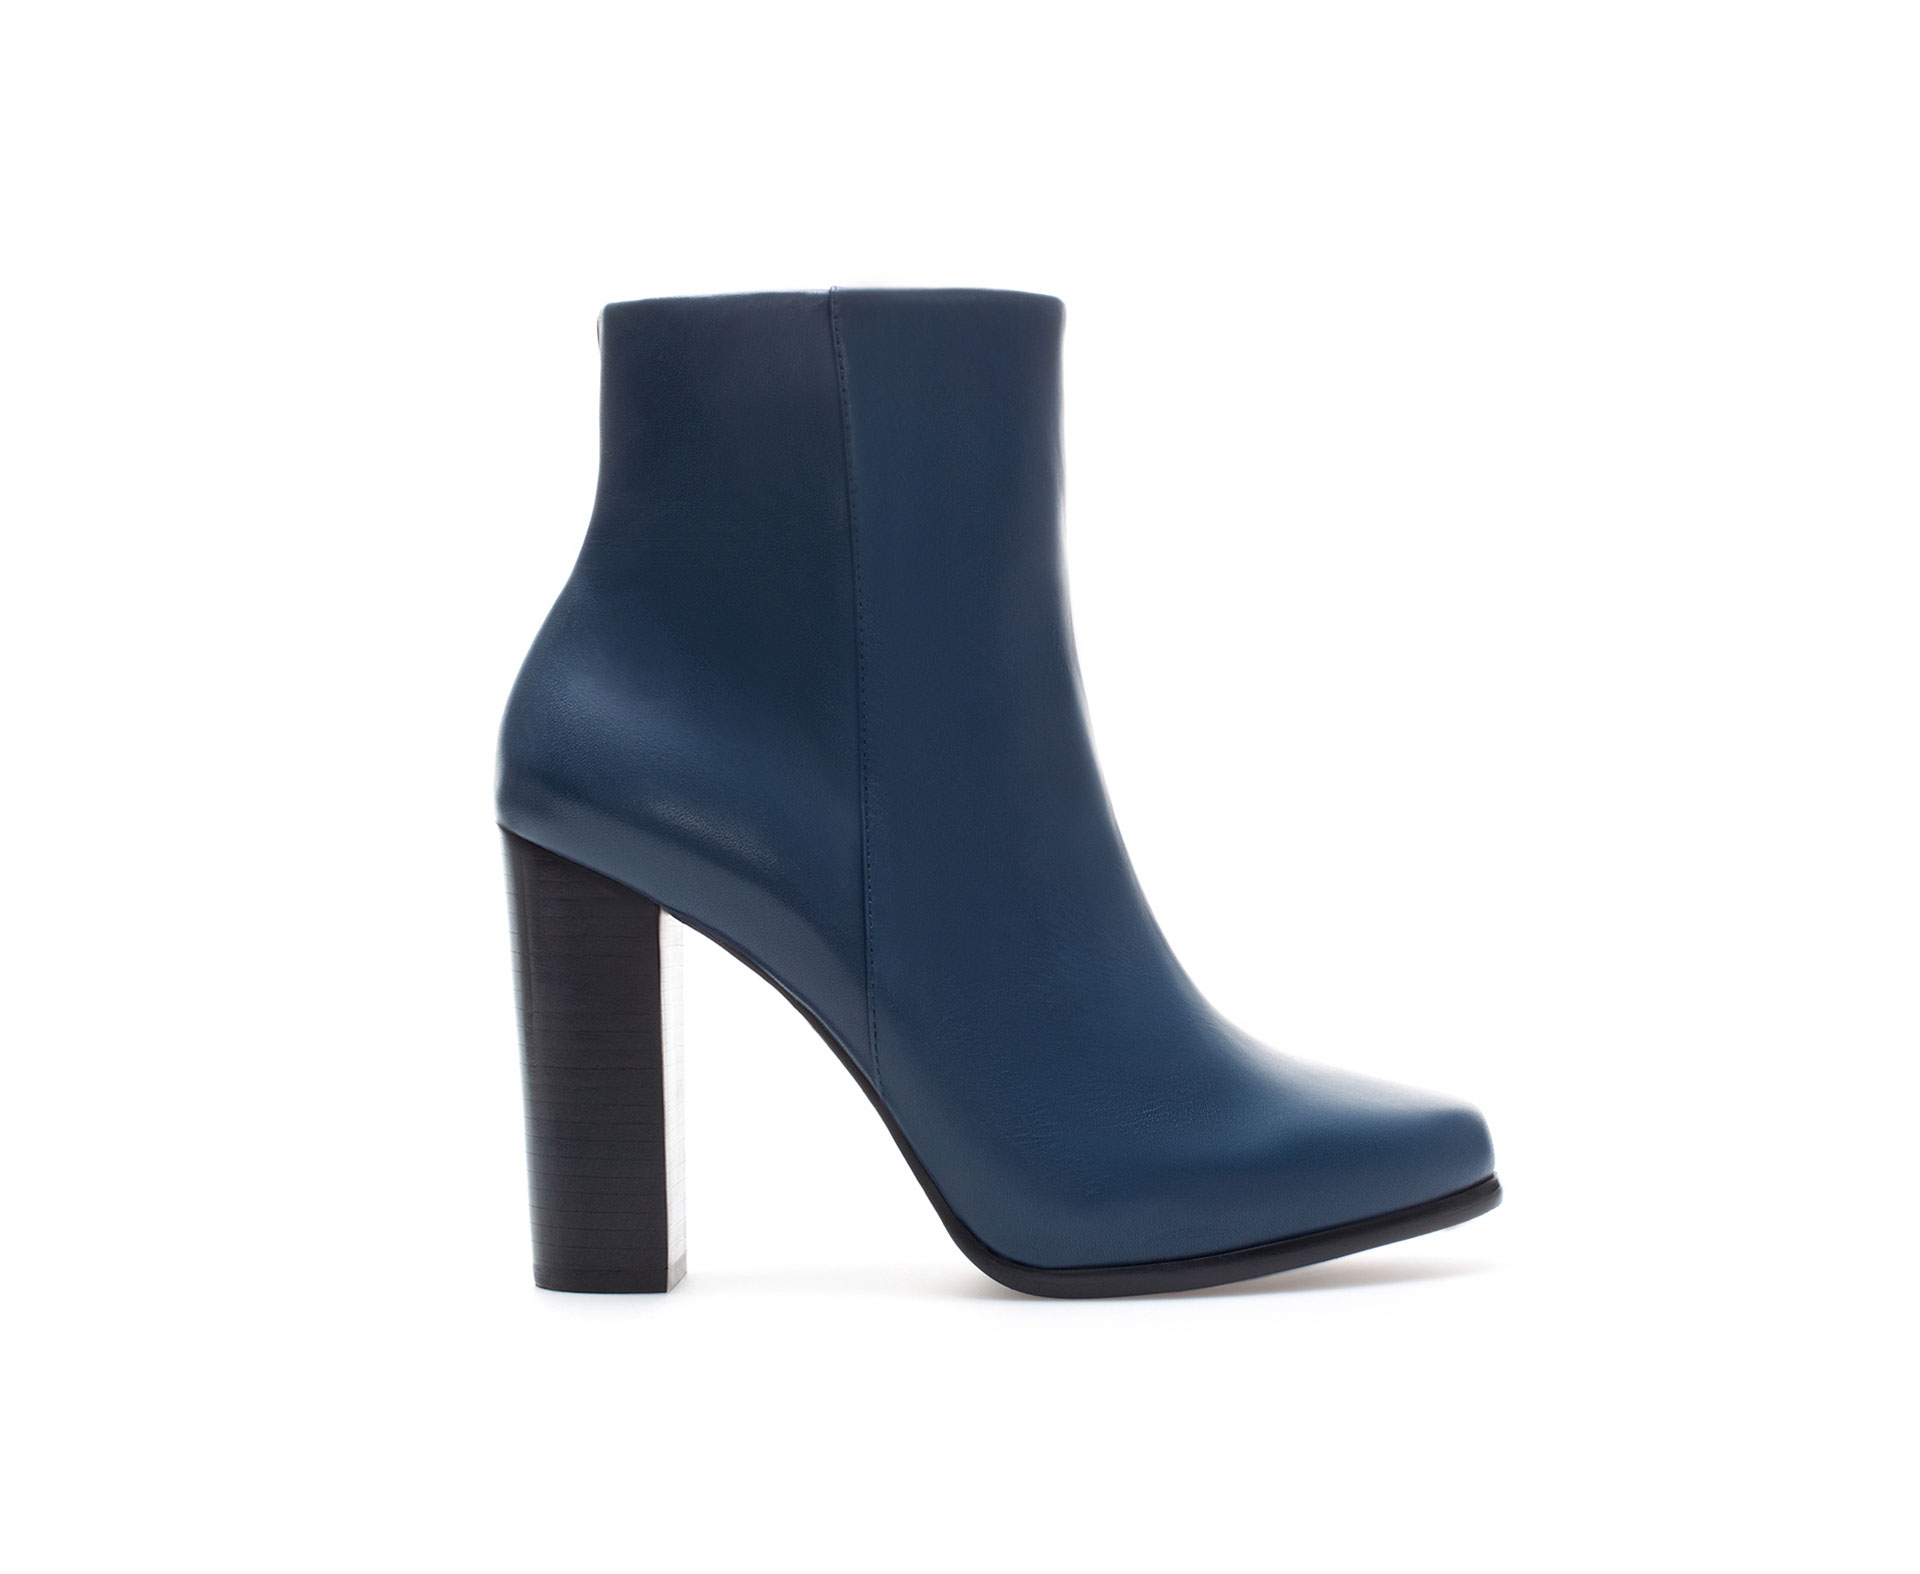 Zara Leather Ankle Boot with Daytime Heel in Blue | Lyst